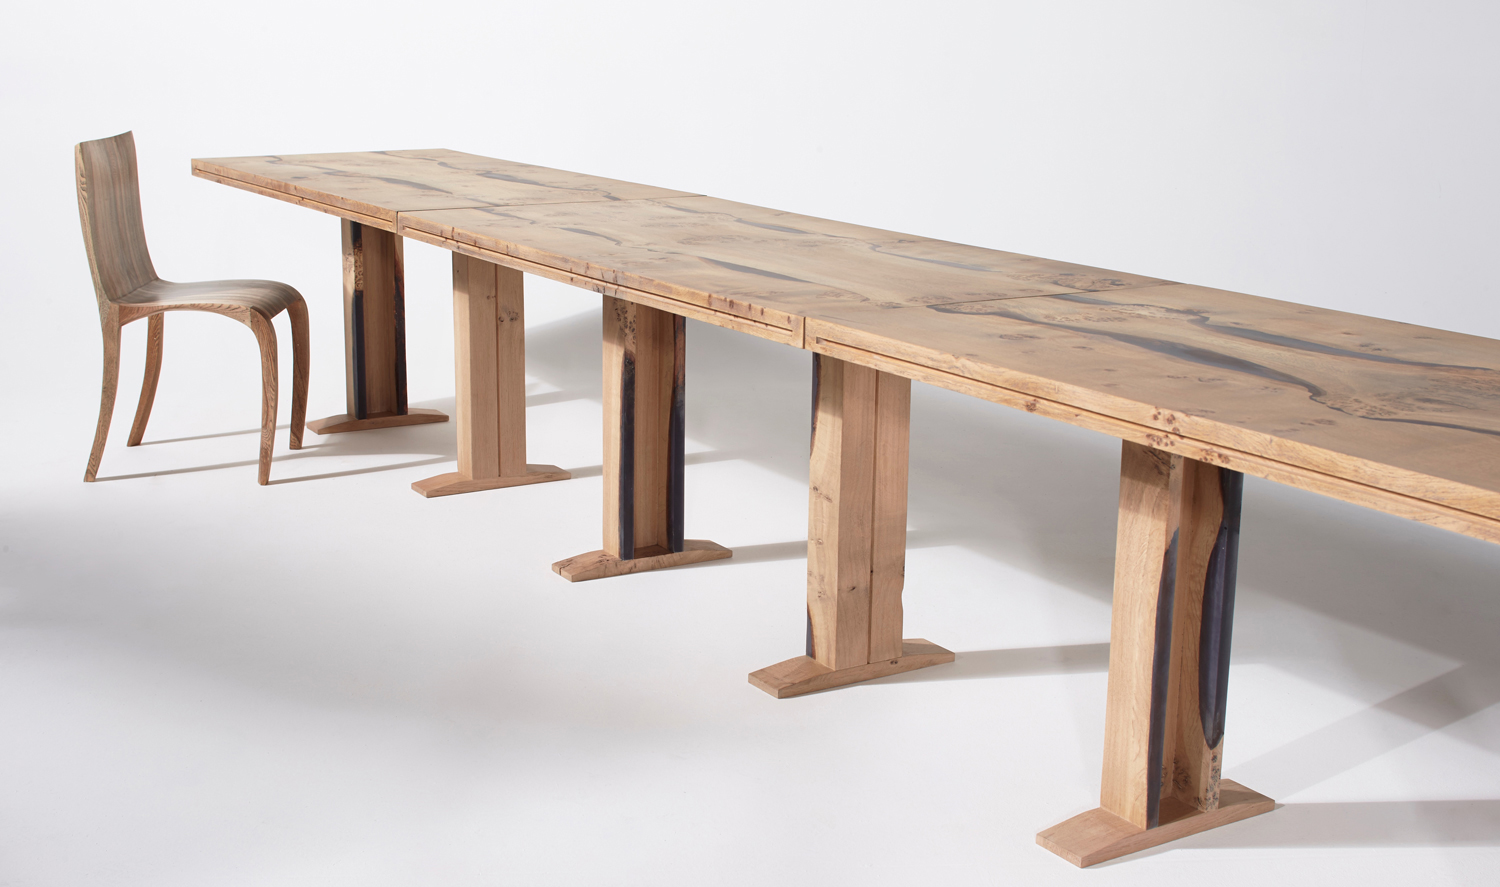 25Conference-table-in-English-oak_2.jpg